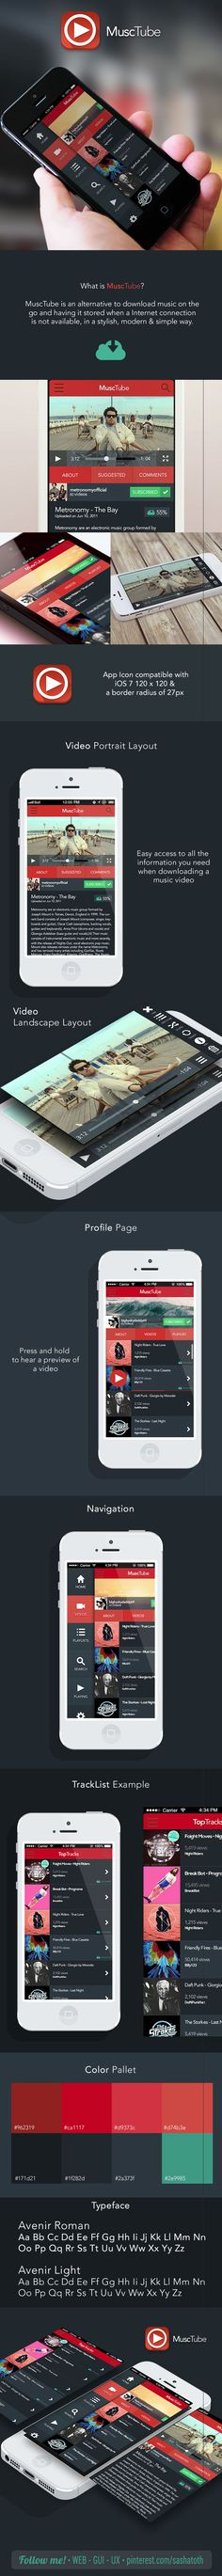 "YouTube downloader re-design *** ""MuscTube is an alternative to download music on the go and having it stored when a Internet connection is not available, in a stylish, modern  simple way."" by Isaac Sanchez, via Behance ***"